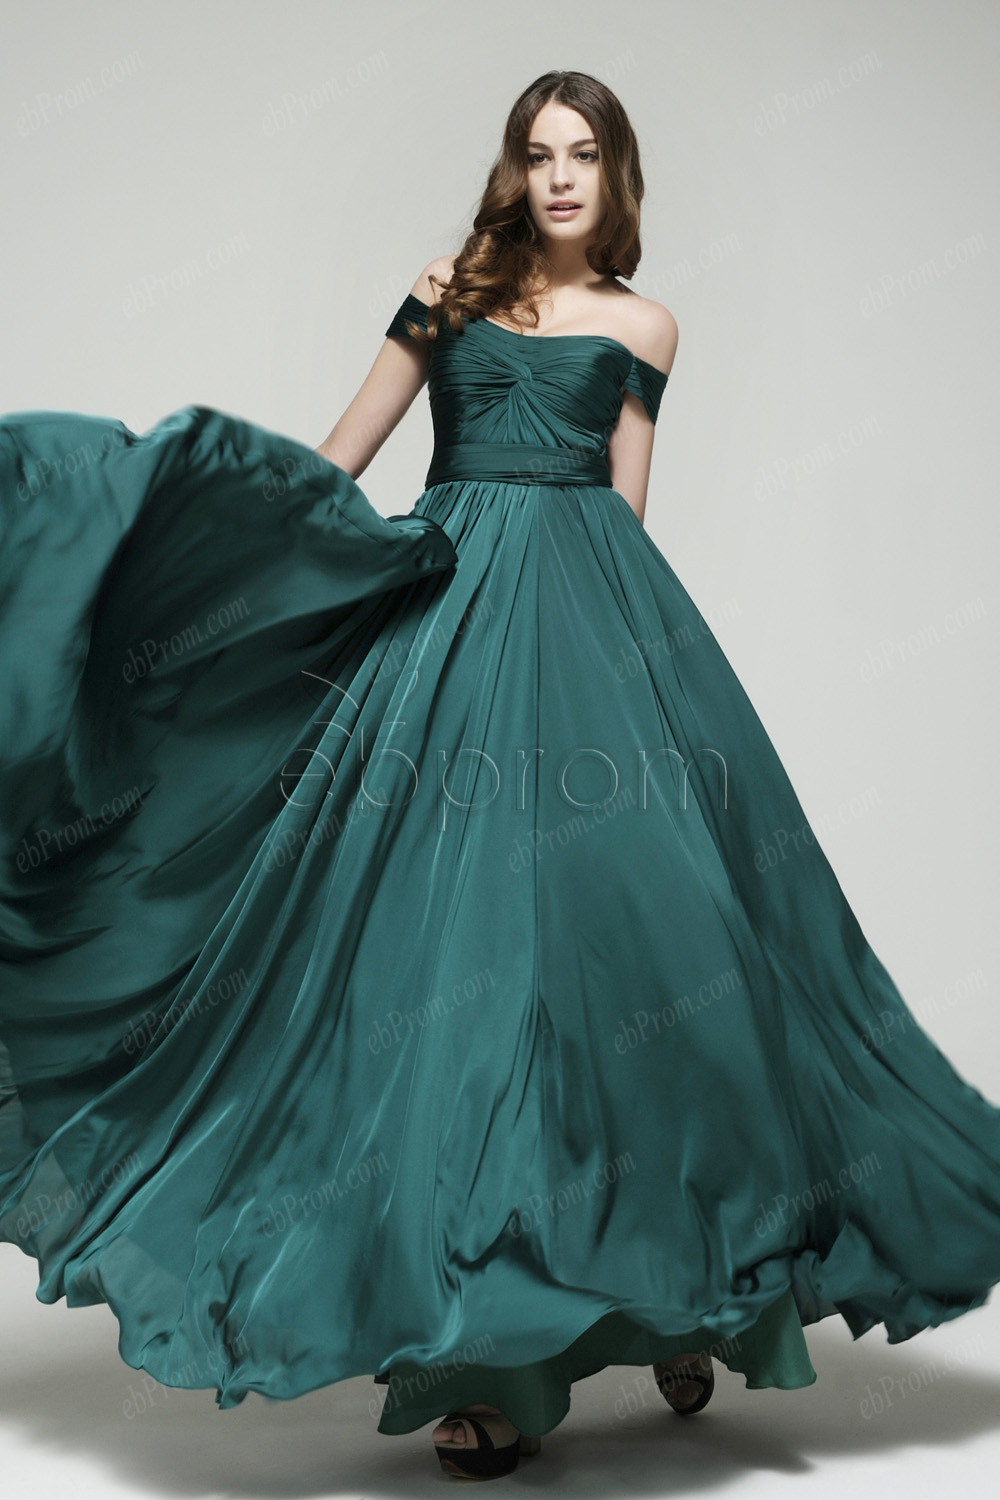 Cocktail Dresses-The Perfect Choice For Many Occasions